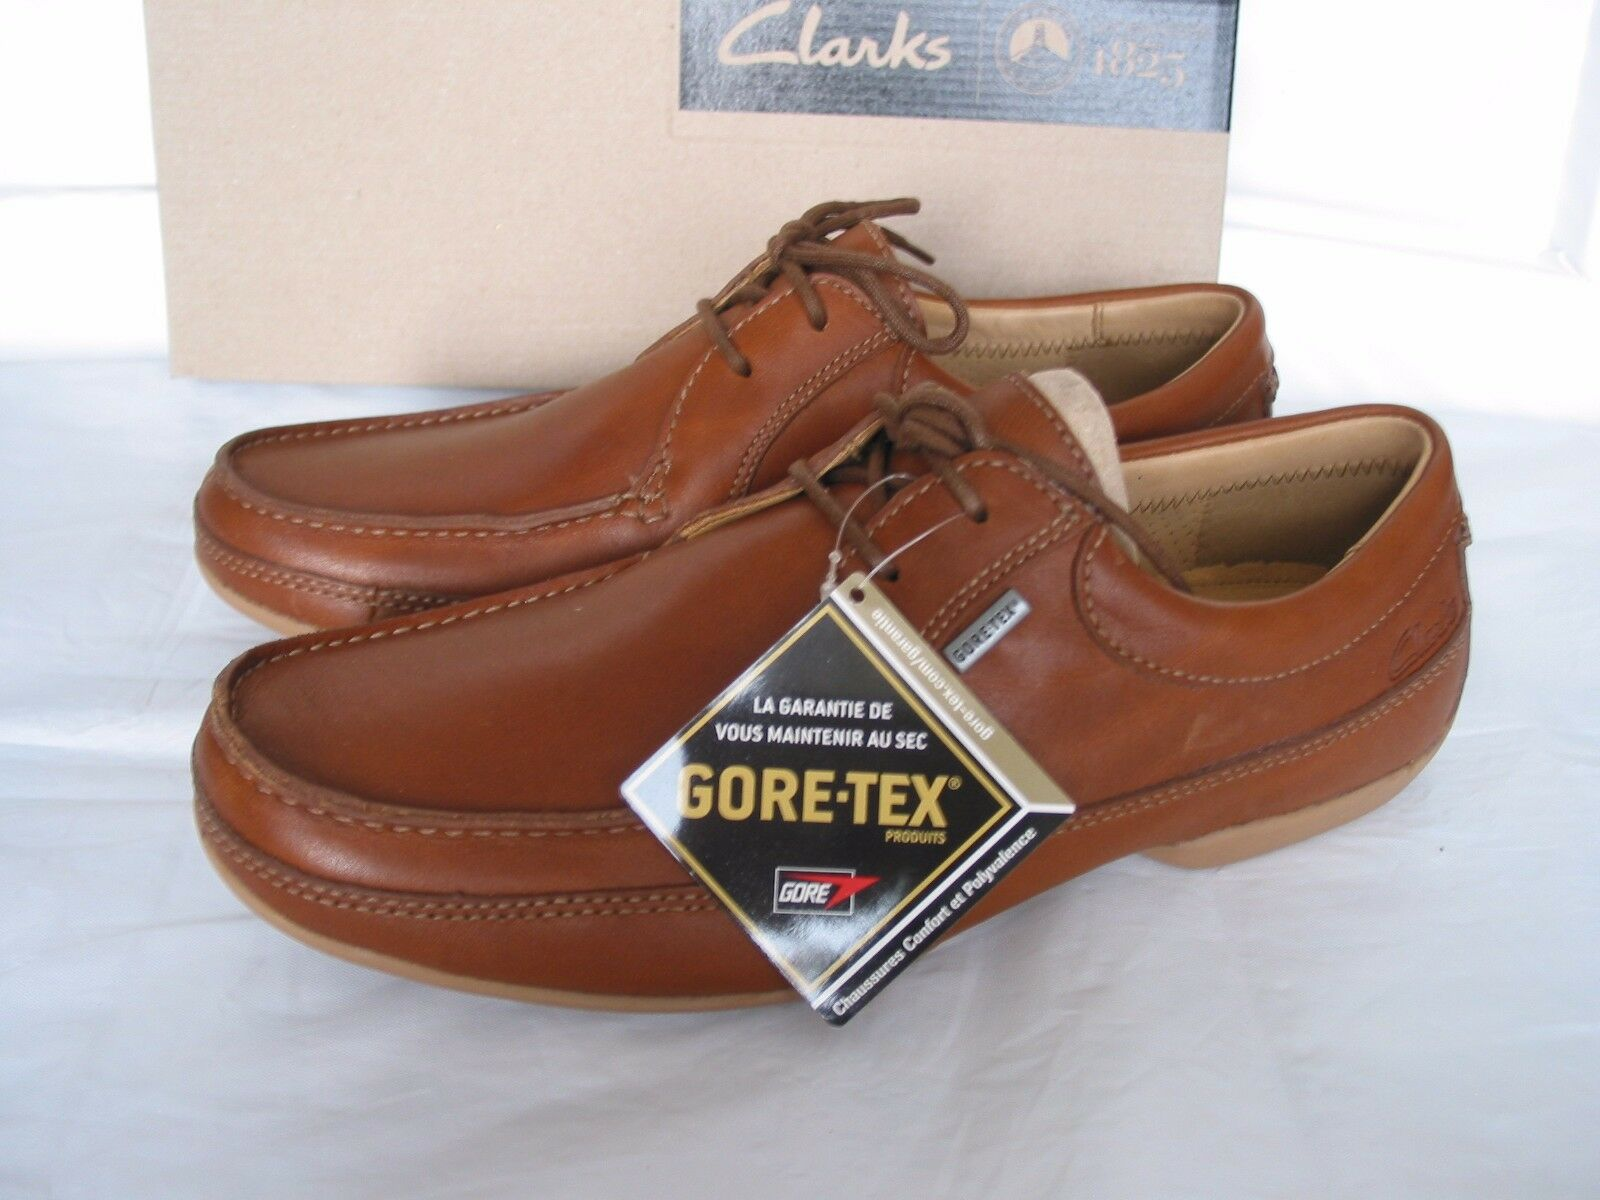 NEW CLARKS RAISE COOL VARIOUS SURROUND GORETEX TAN LEATHER SHOES VARIOUS COOL SIZES 030d41